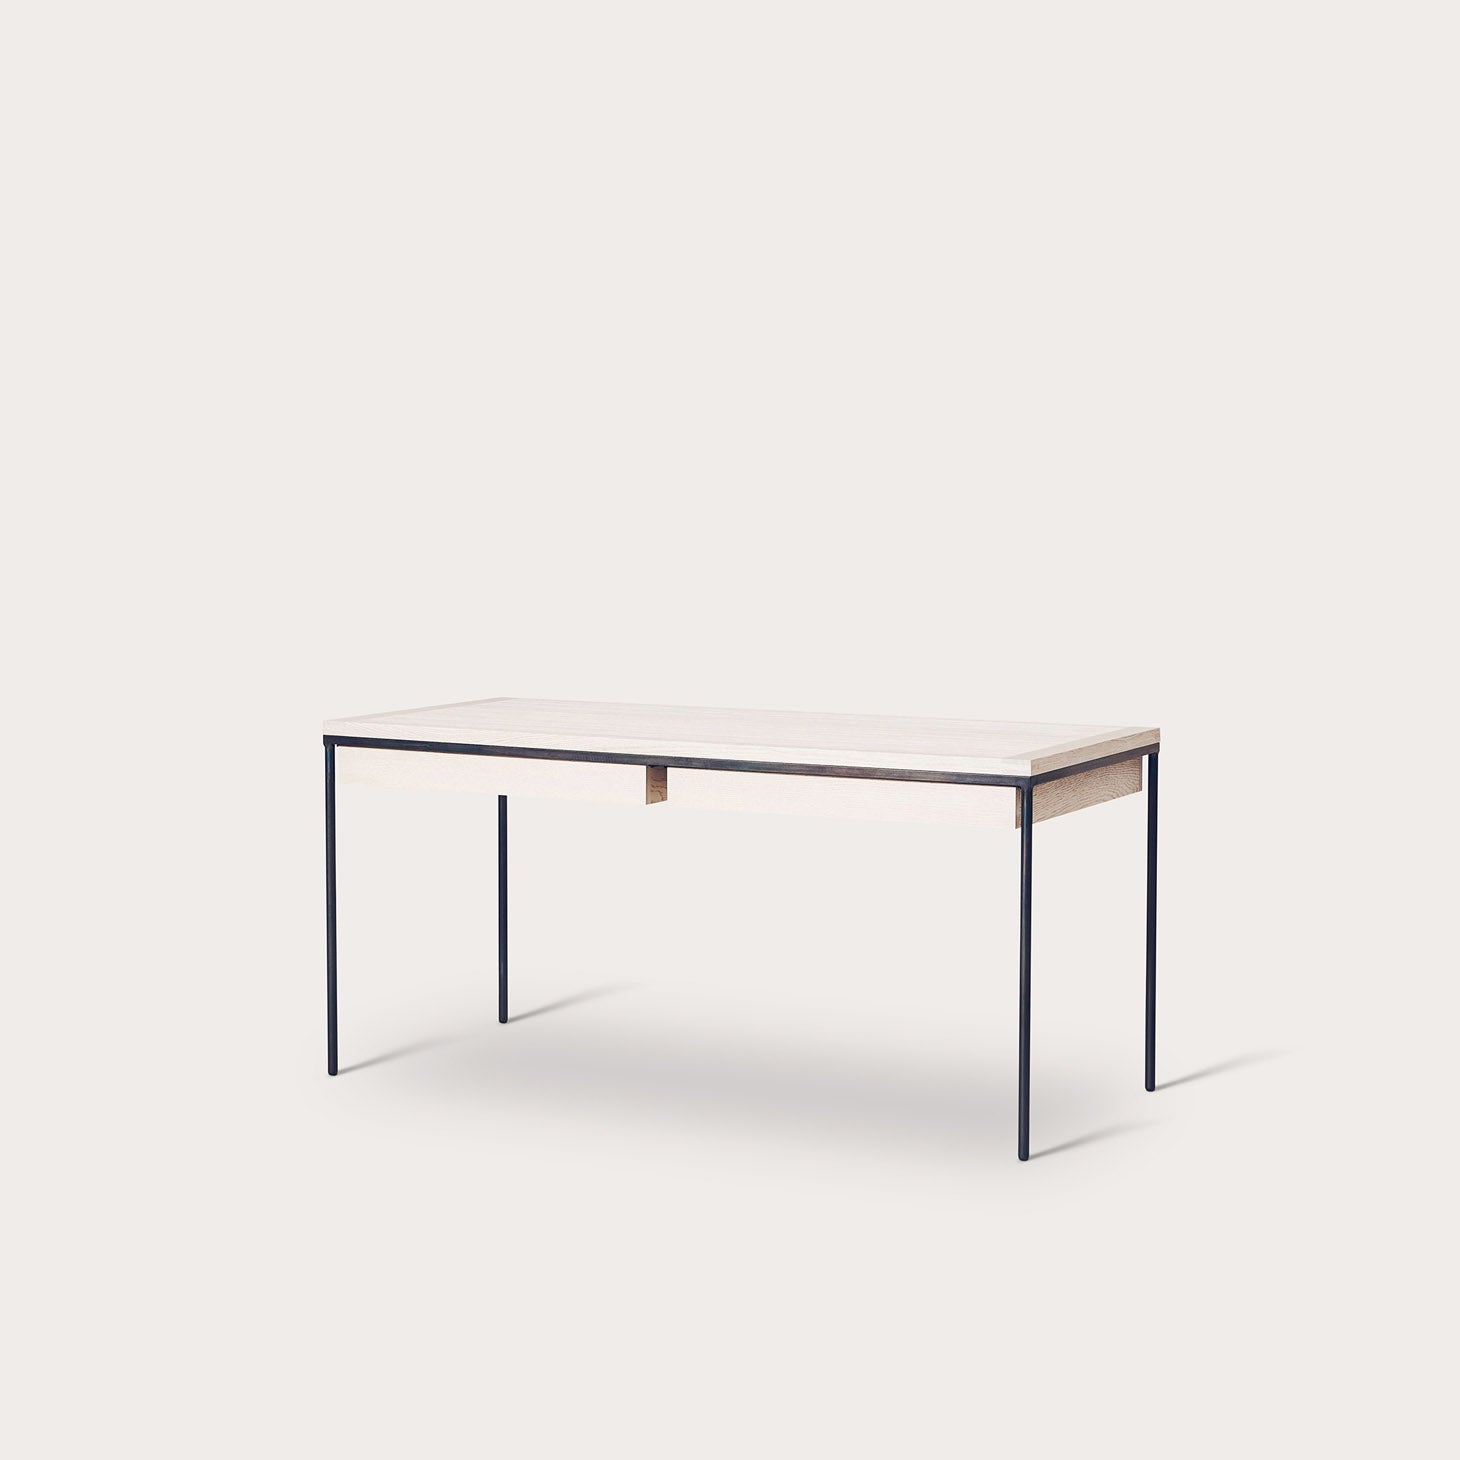 HER Tables Christophe Delcourt Designer Furniture Sku: 008-230-10327